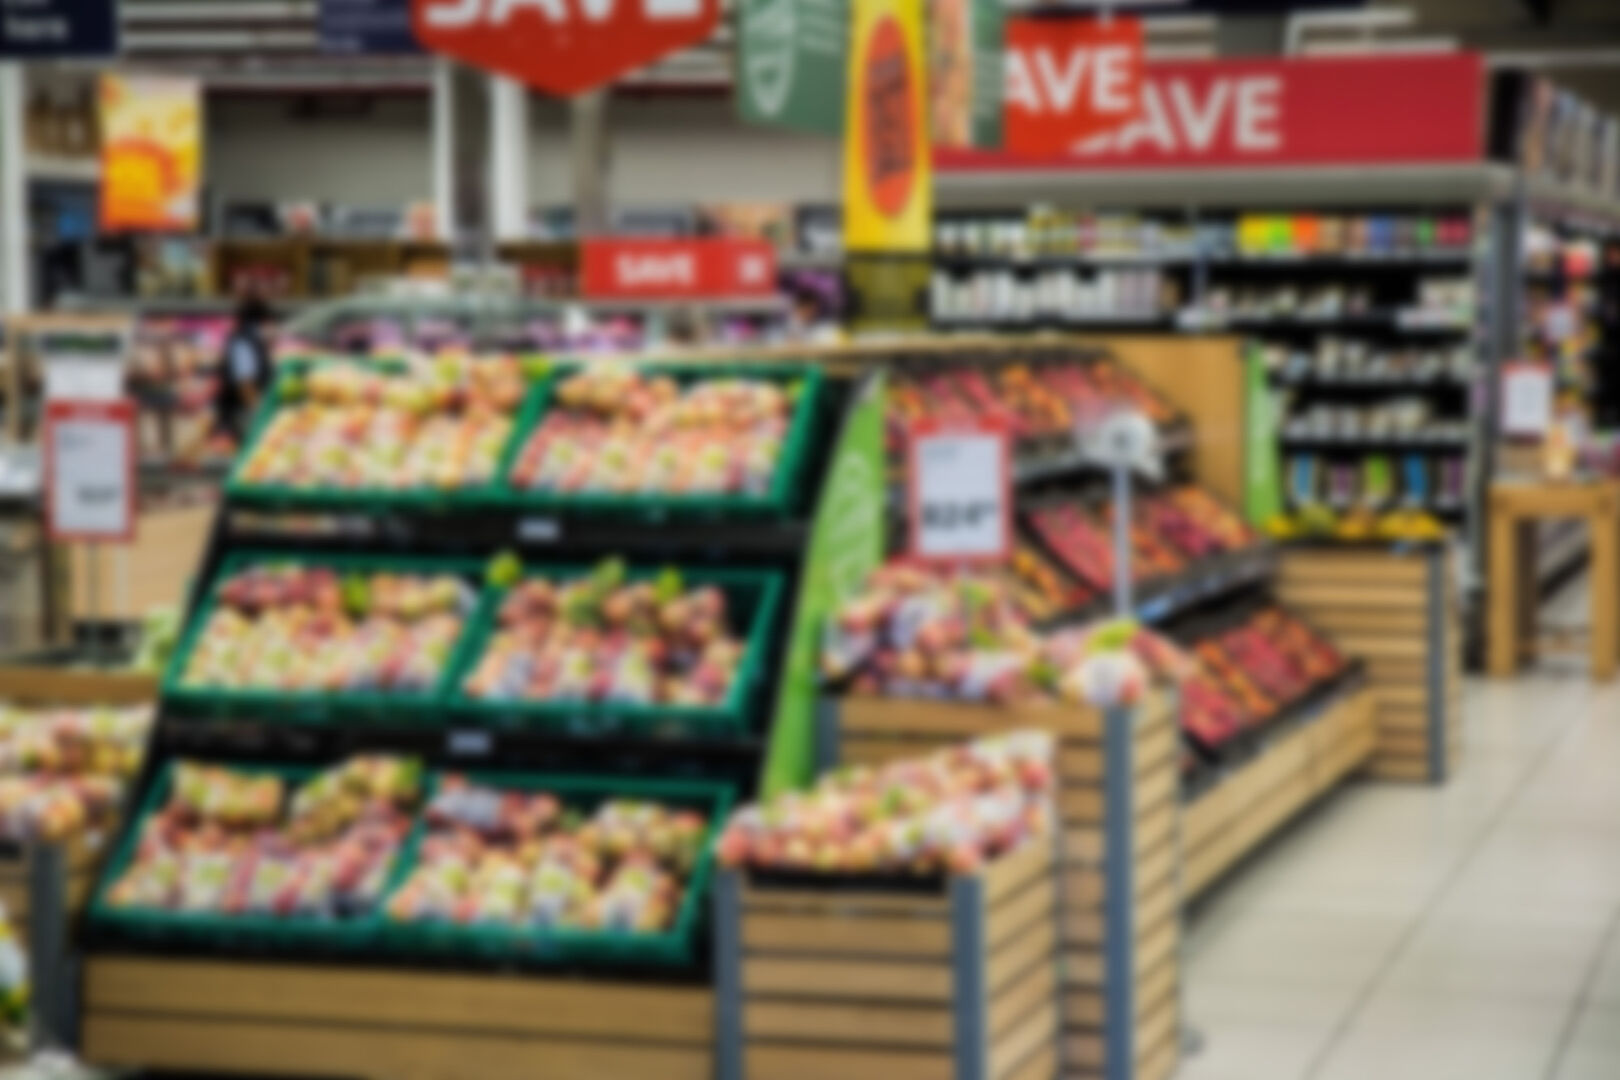 Supermarkets are getting smarter